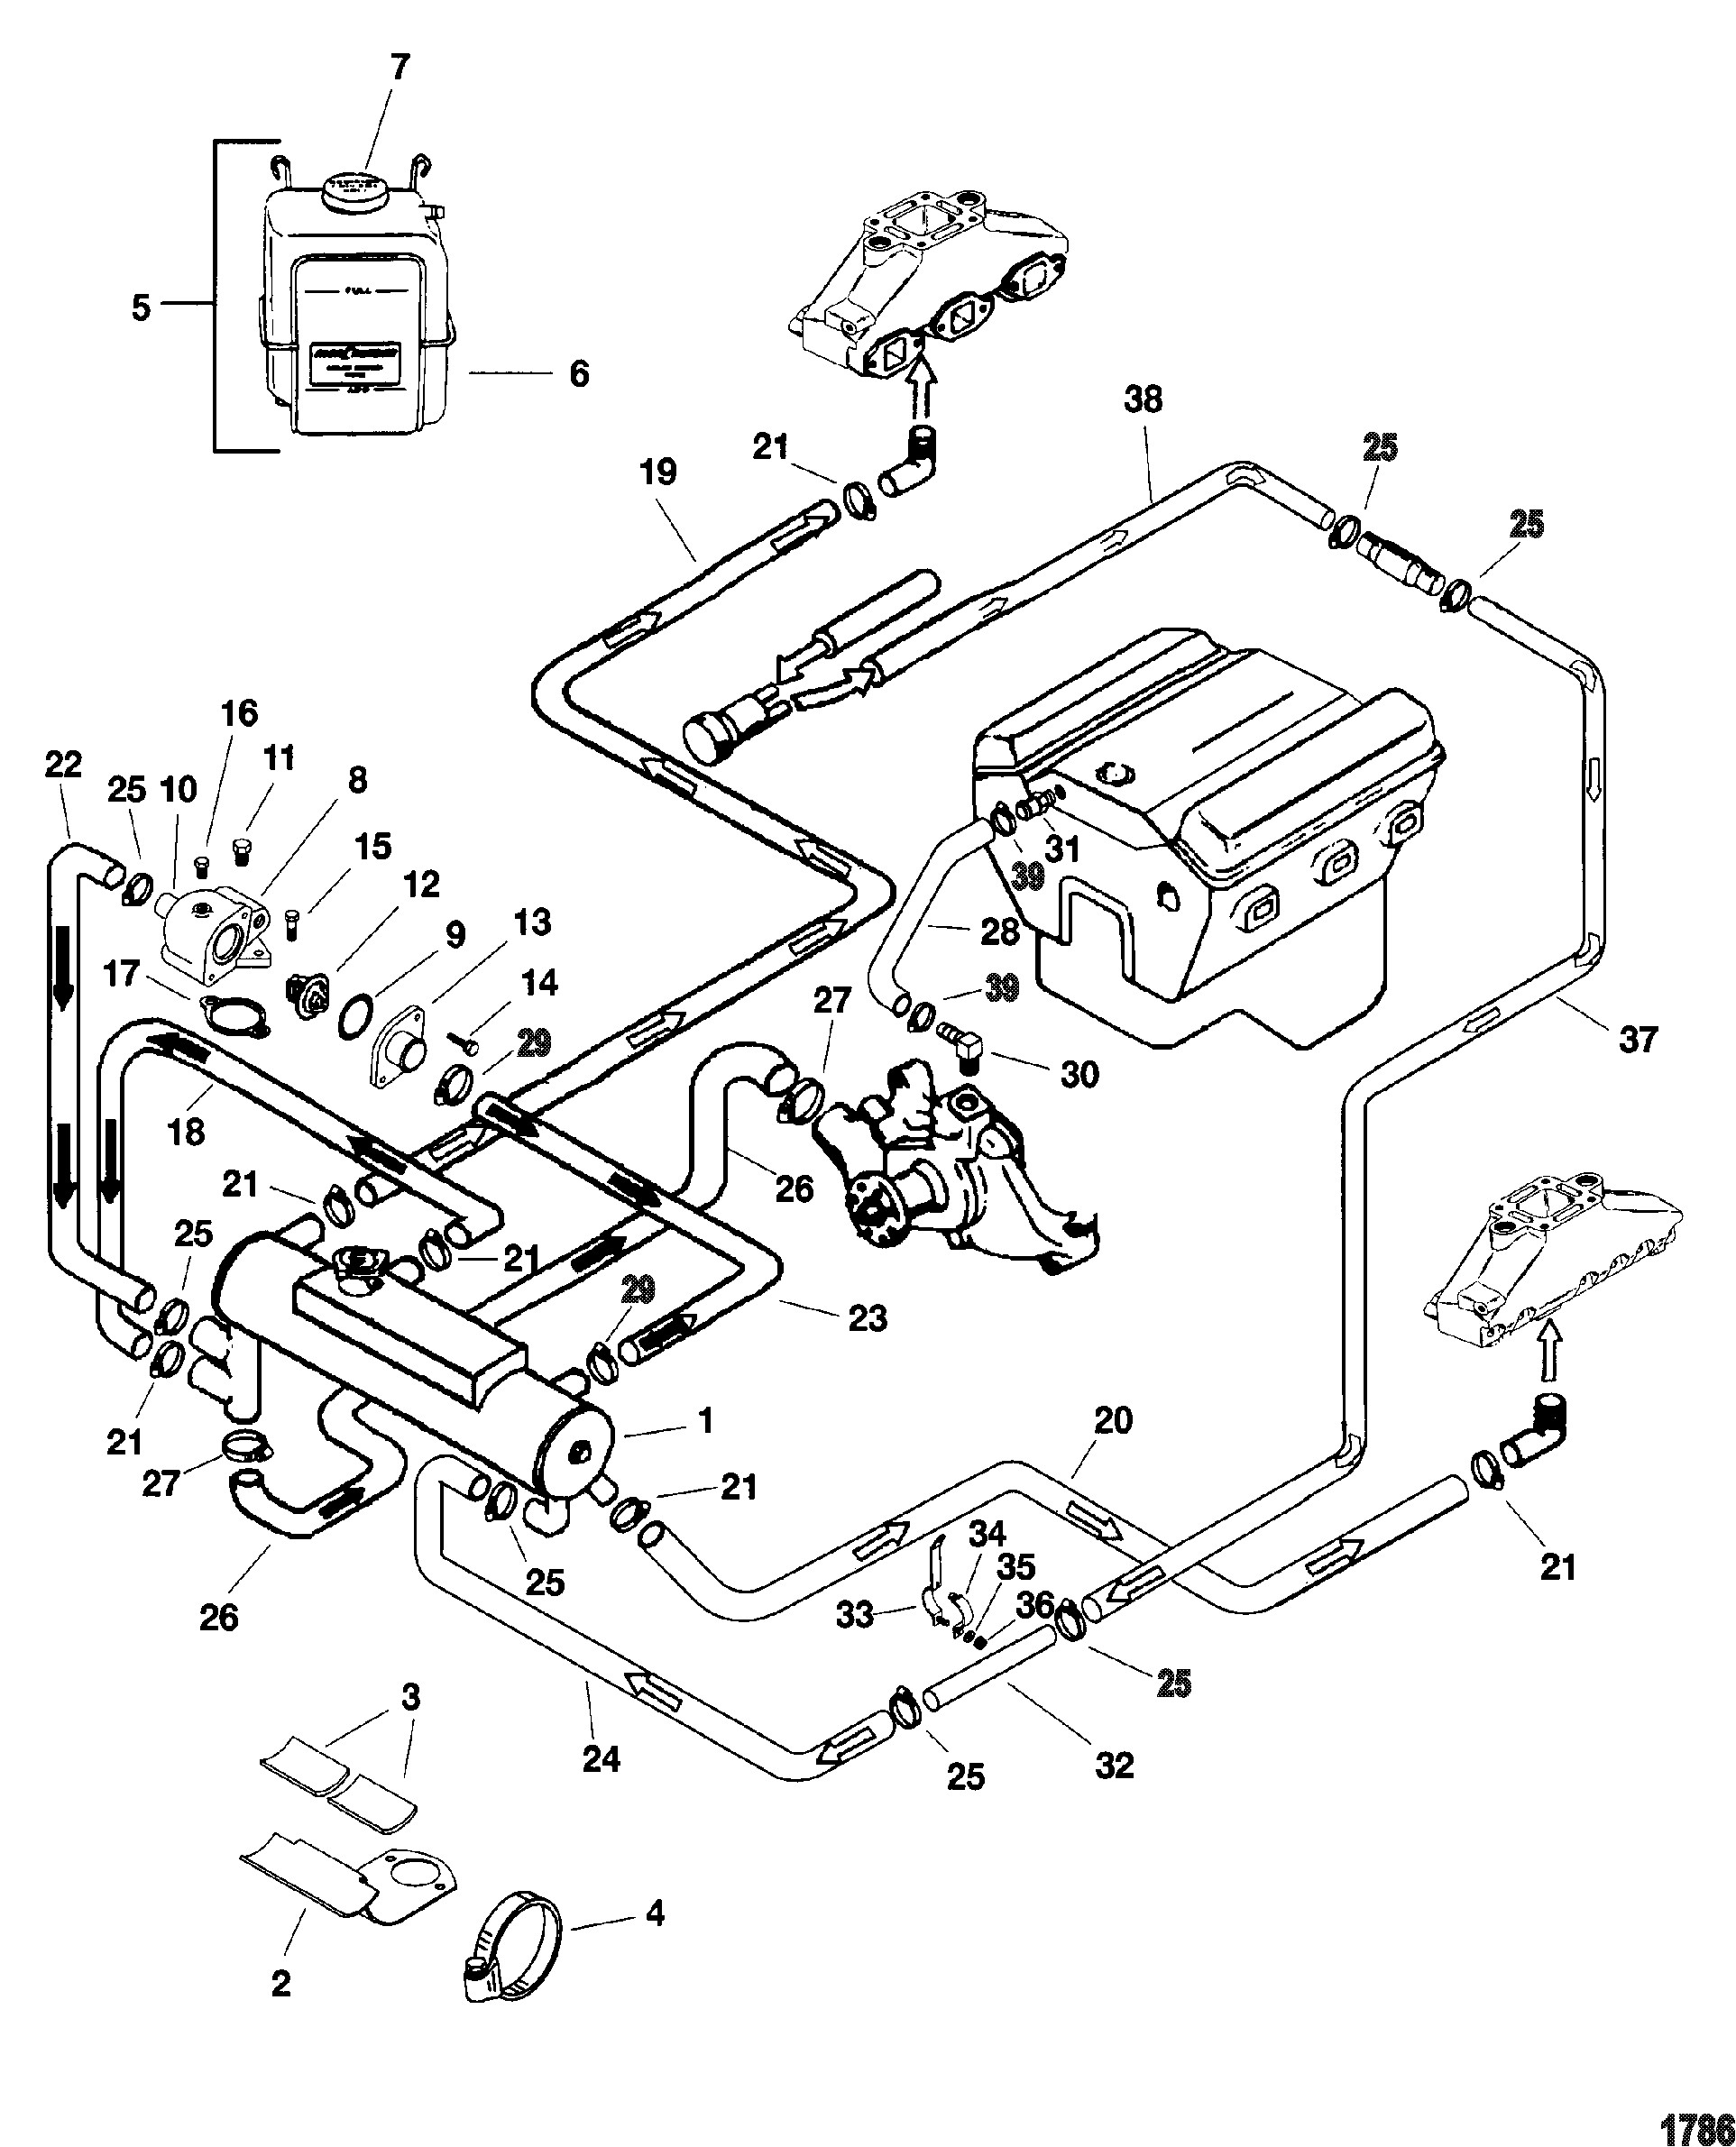 hight resolution of 2000 chrysler 3 8 engine diagram data wiring diagramchrysler town and country 3 8 engine diagram